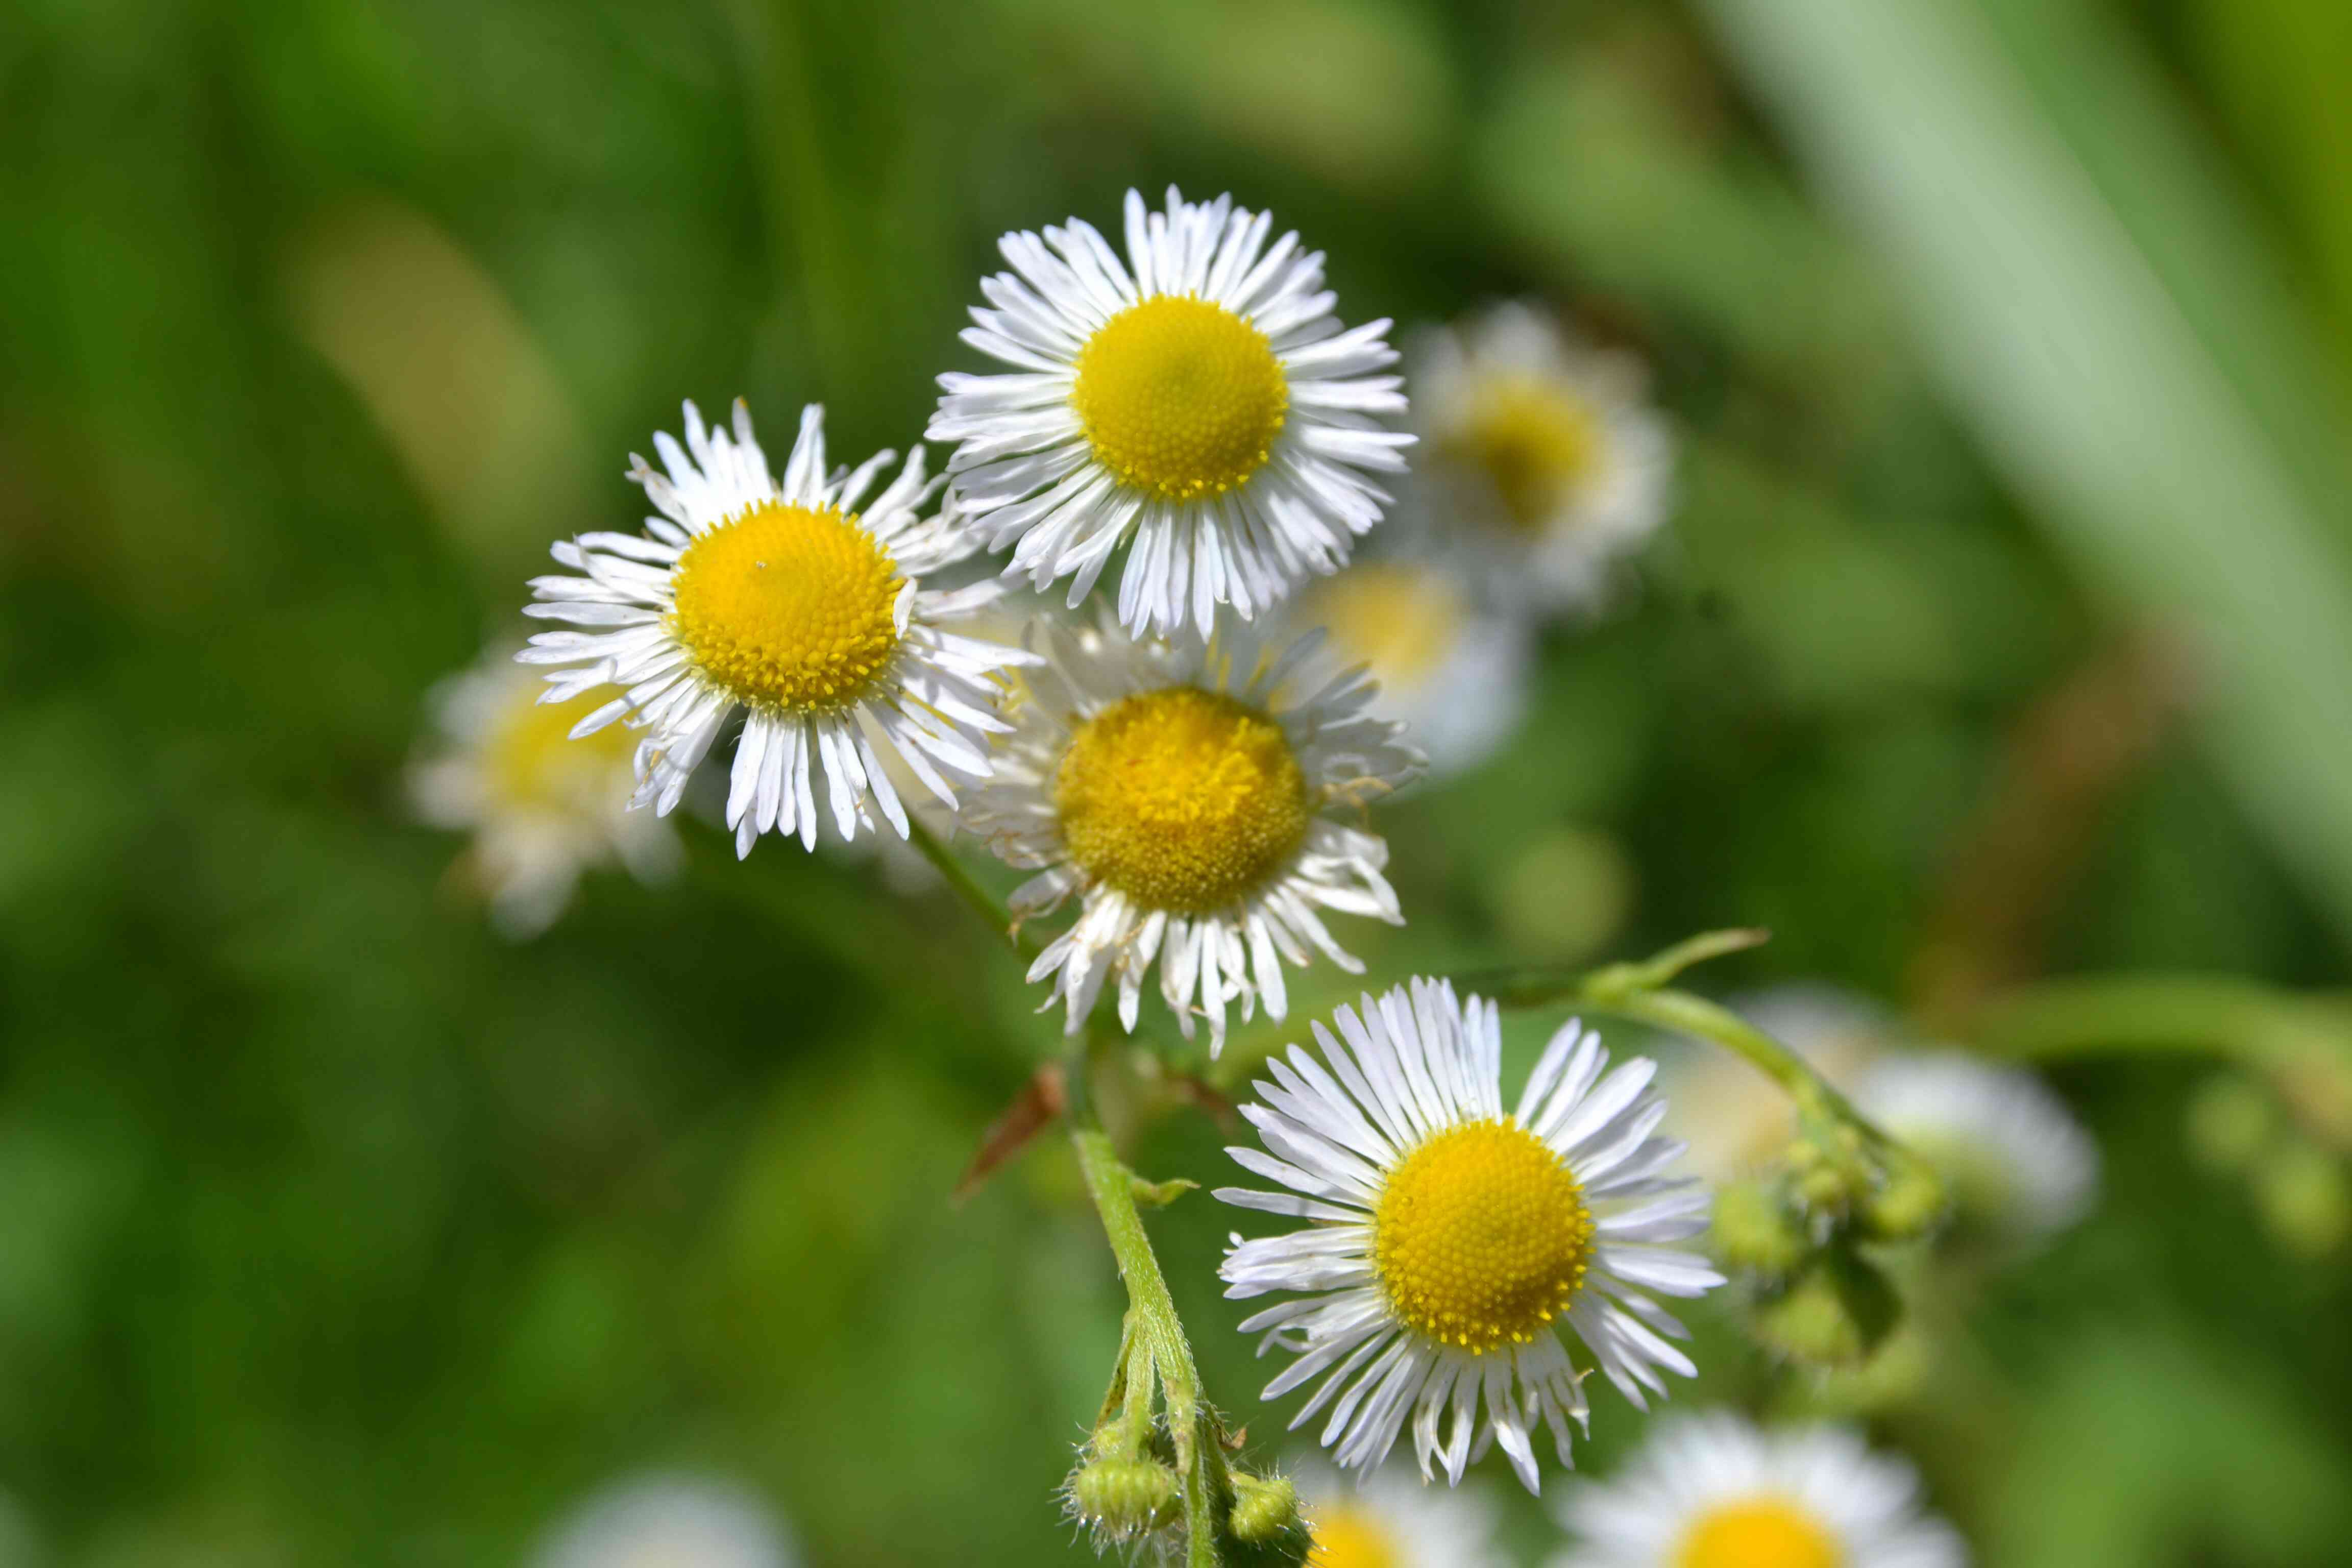 Mexican fleabane flowers with small white thin petals surrounded by yellow centers on stem